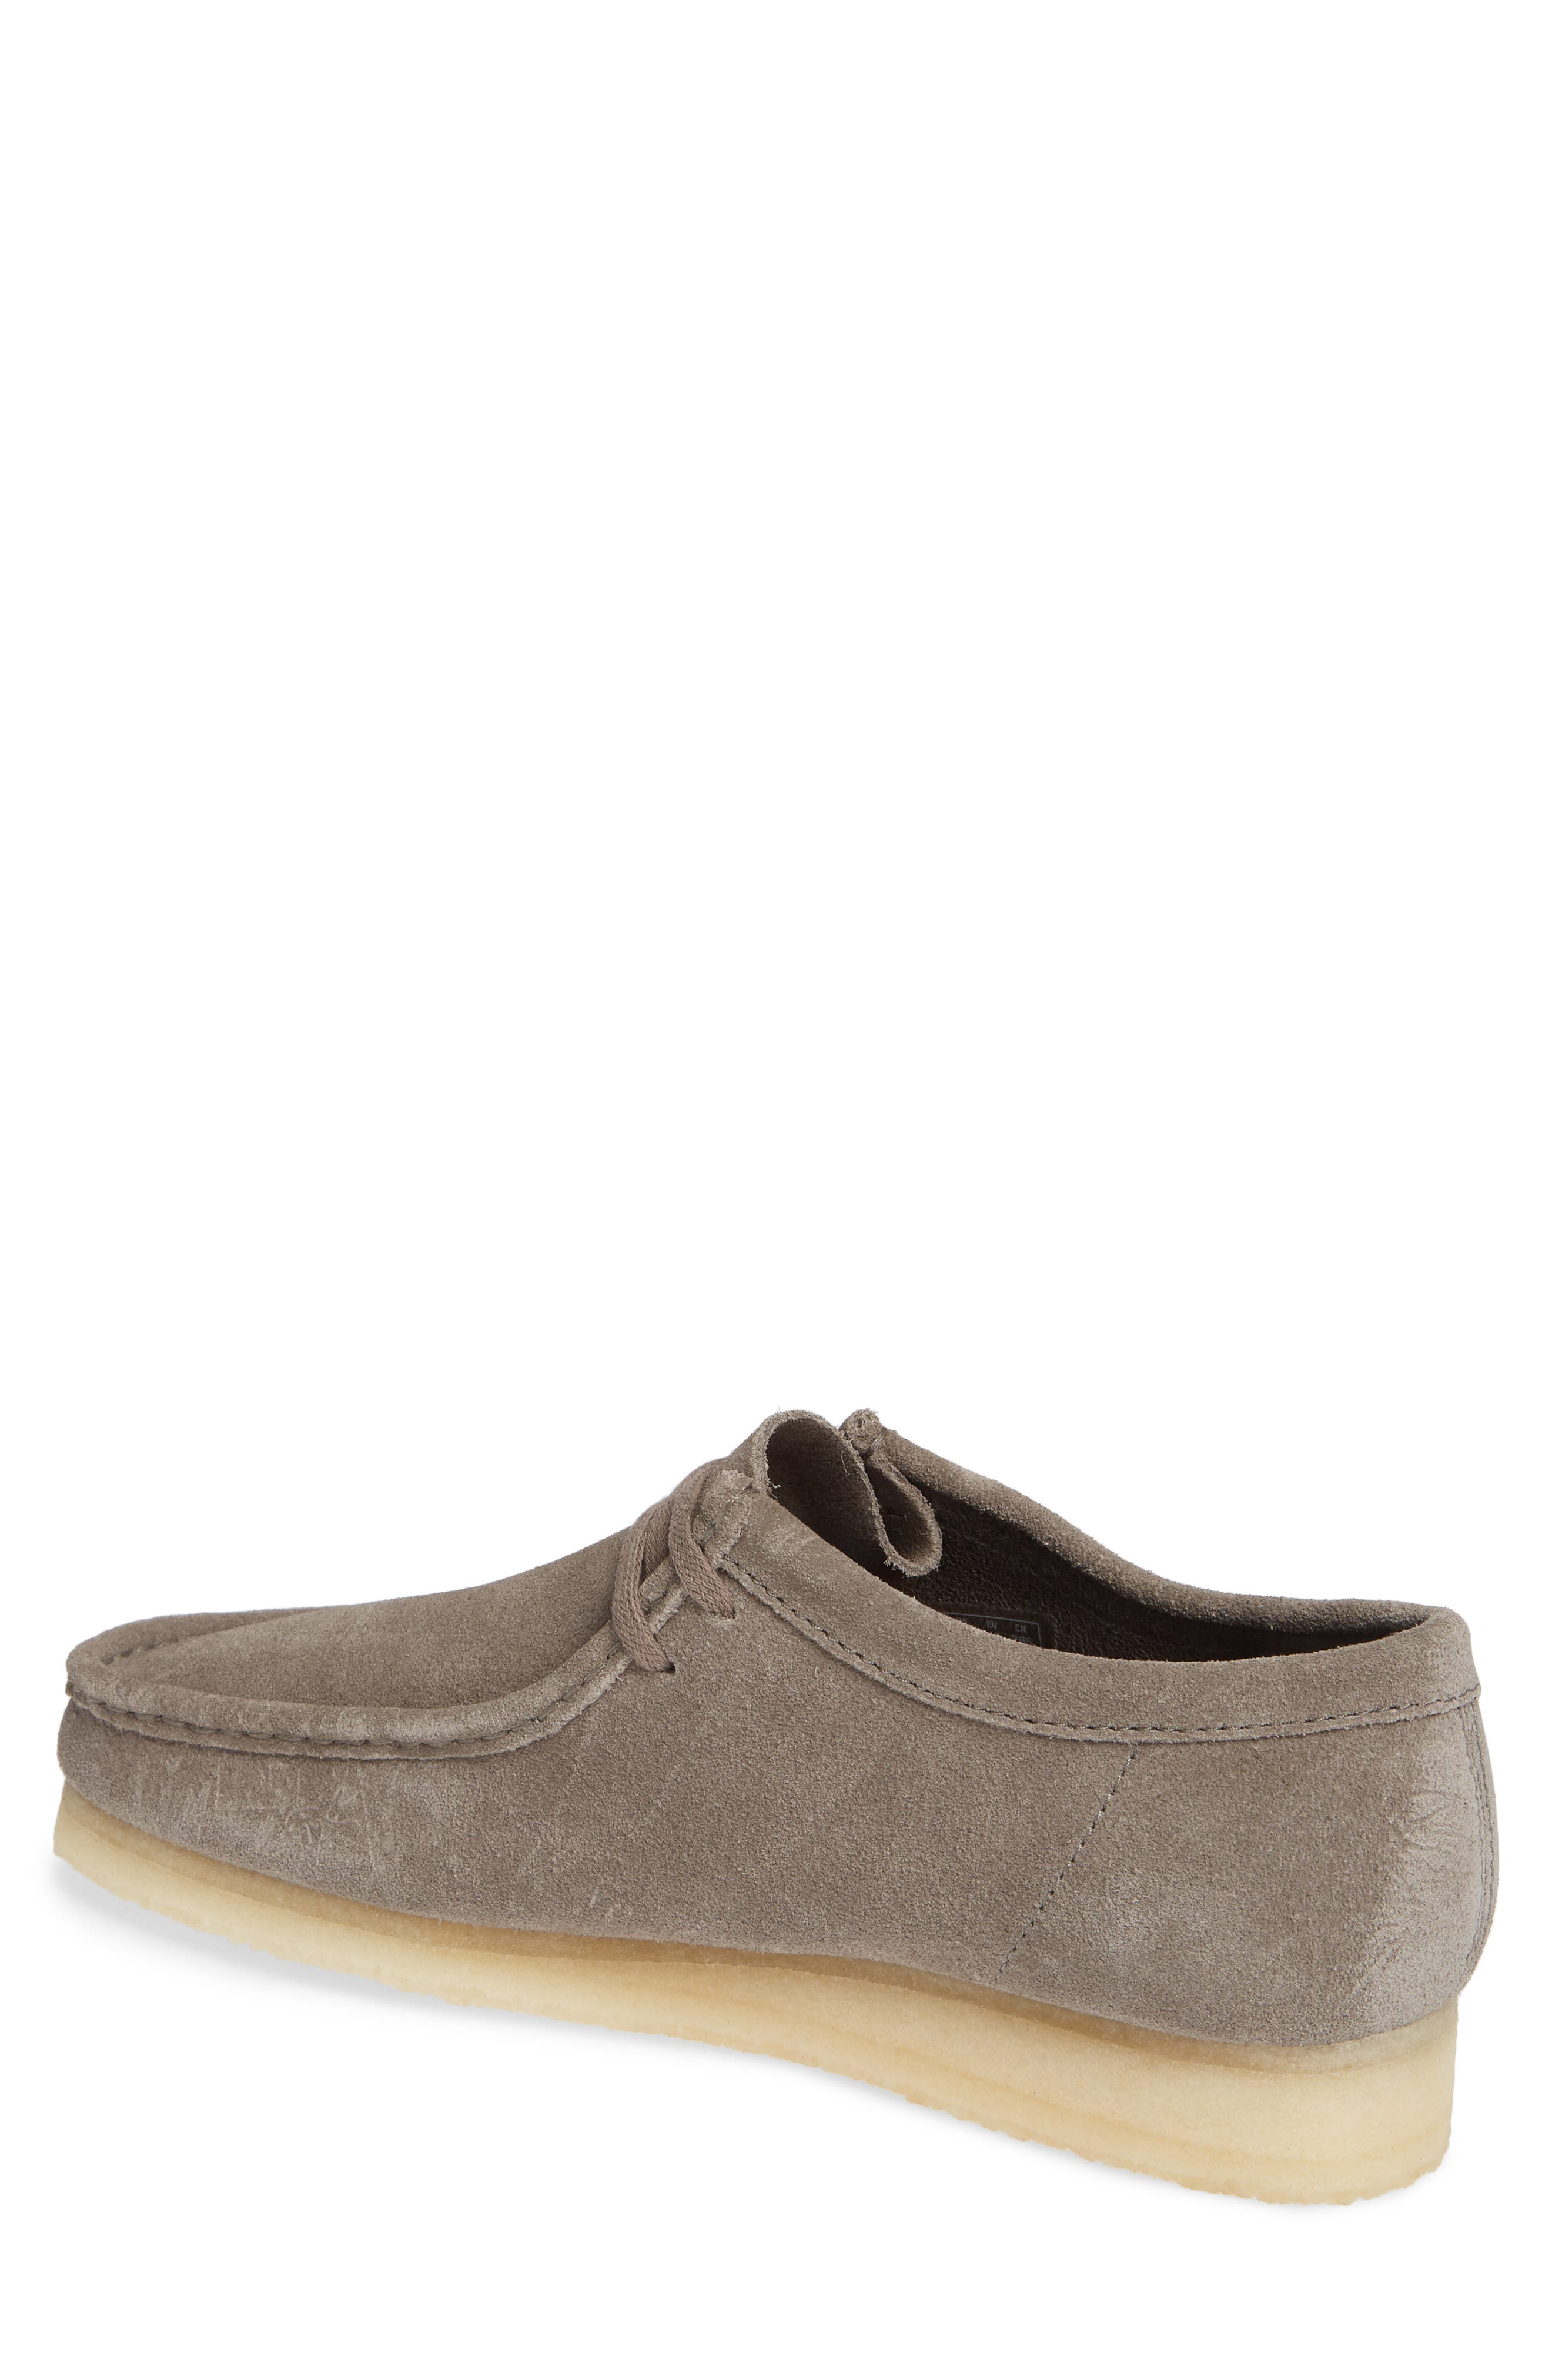 'Wallabee' Moc Toe Derby,                             Alternate thumbnail 2, color,                             GREY LEATHER